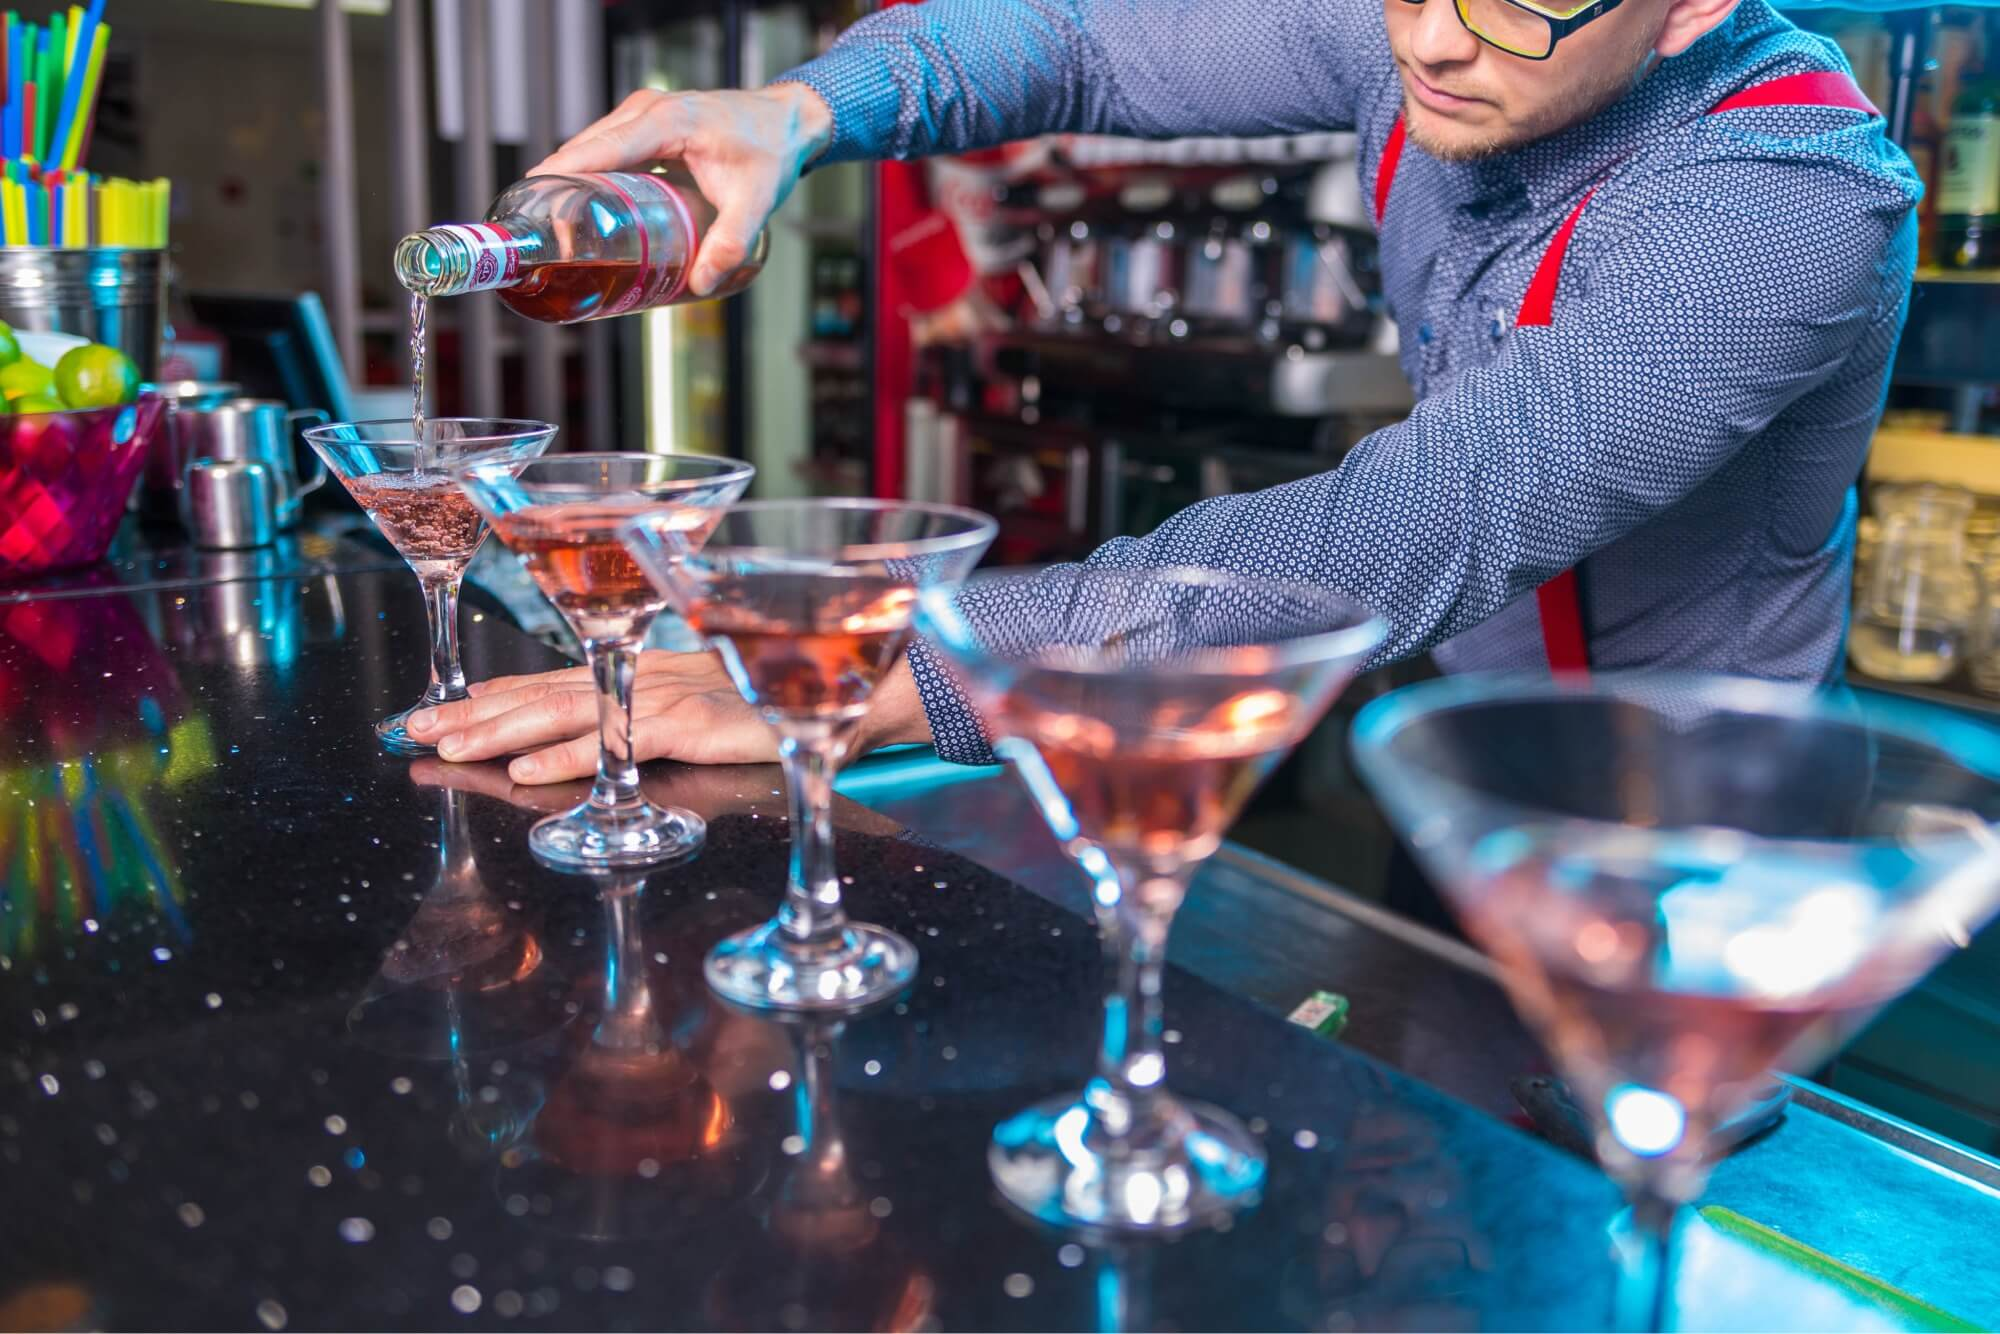 After opening a bar, this bartender, wearing a long sleeve blue button down with red suspenders, is serving 5 cosmopolitan martinis.